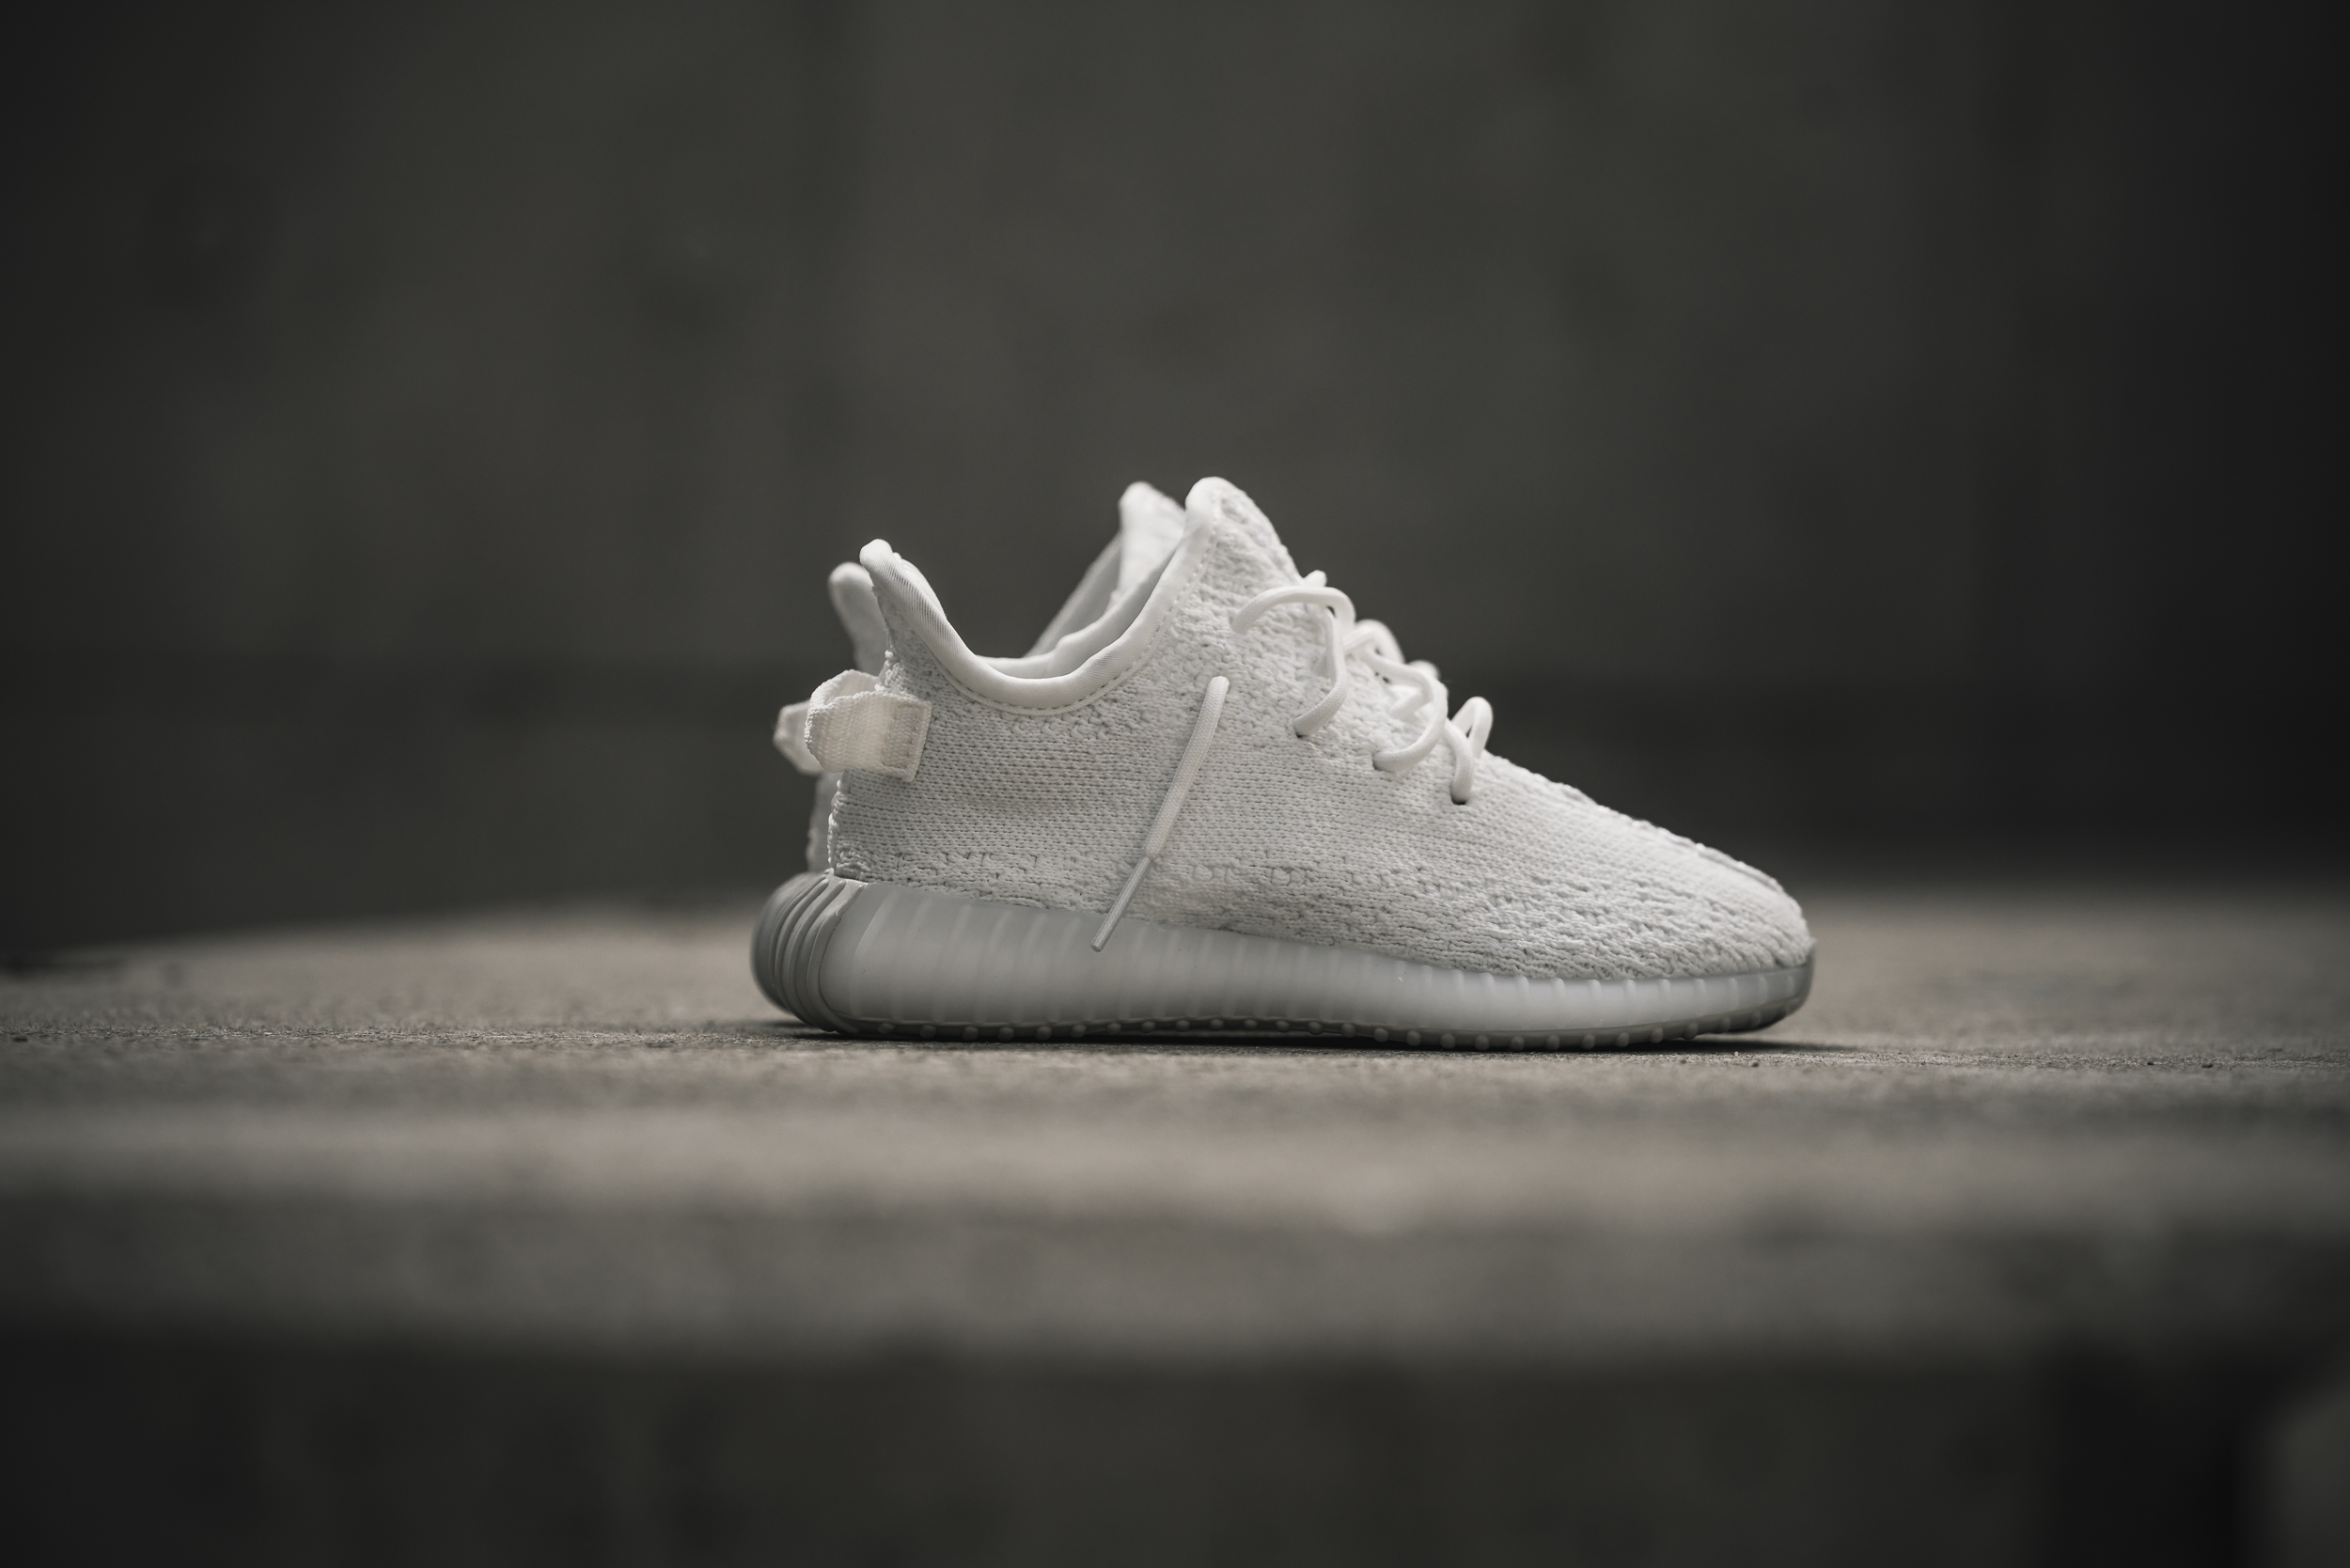 6caba6e01 adidas Yeezy Boost 350 V2 - Solebox Preview   On Foot - OG EUKicks ...